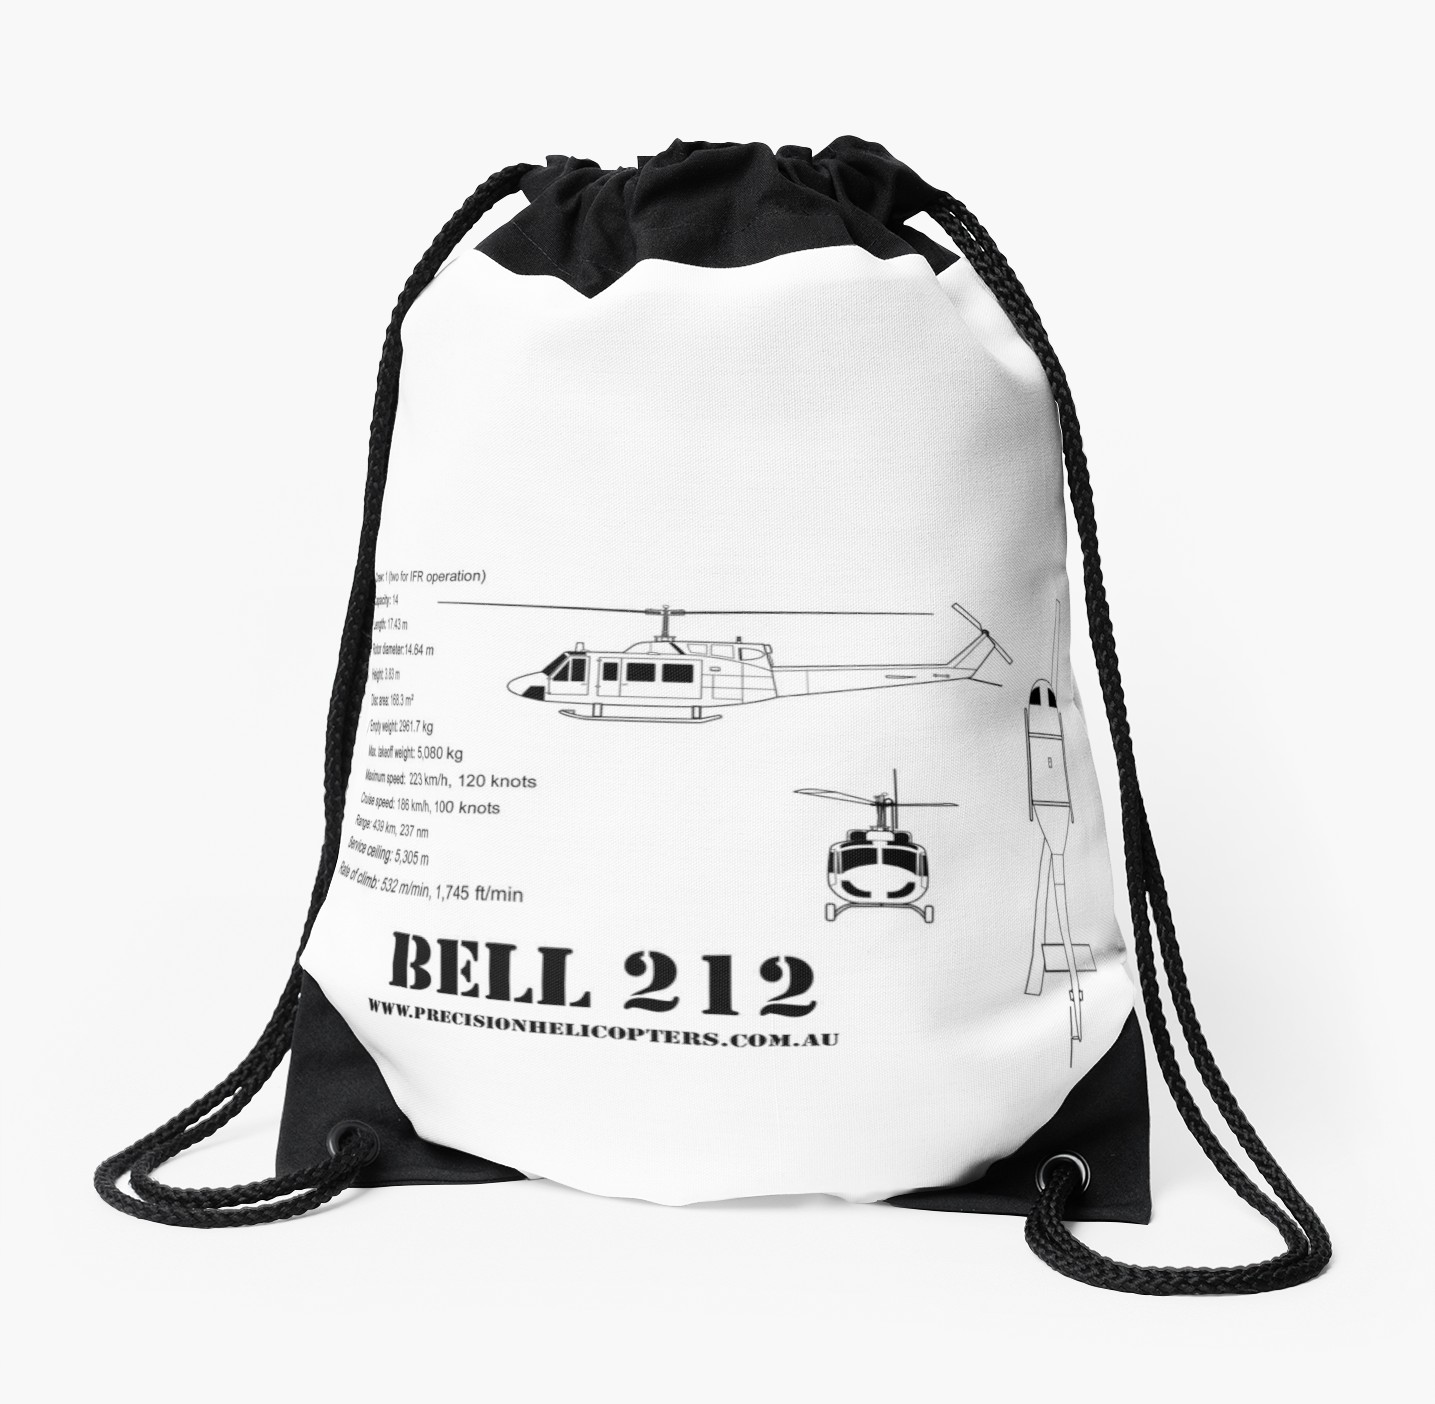 1435x1404 Bell 212 Twin Huey Helicopter Drawstring Bags By Precisionheli